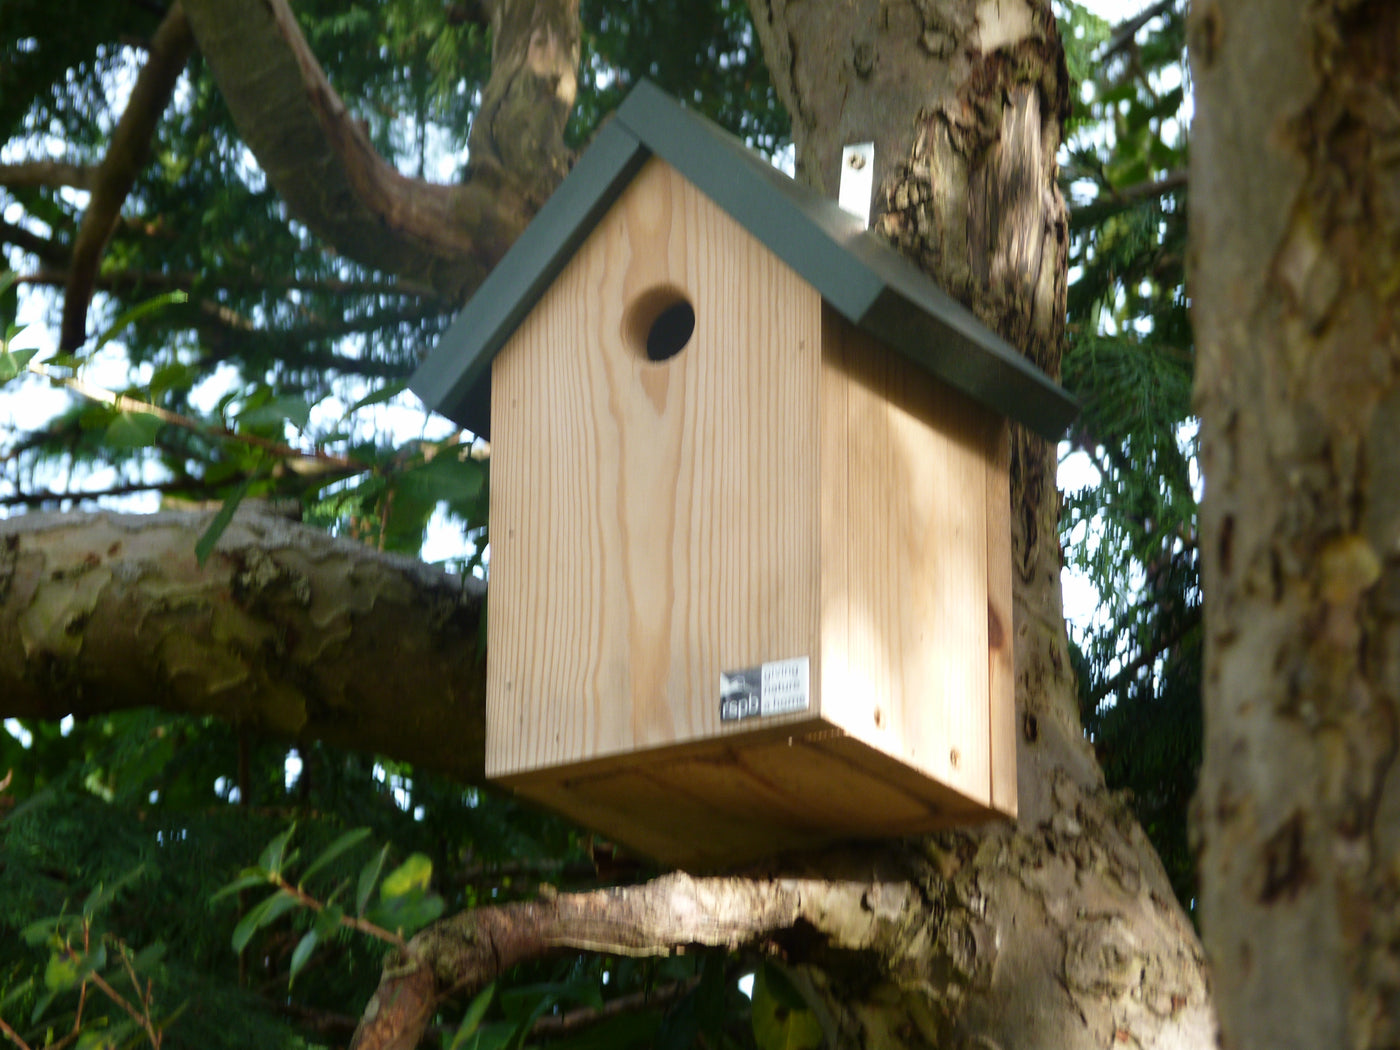 How to Put Up a Nest Box